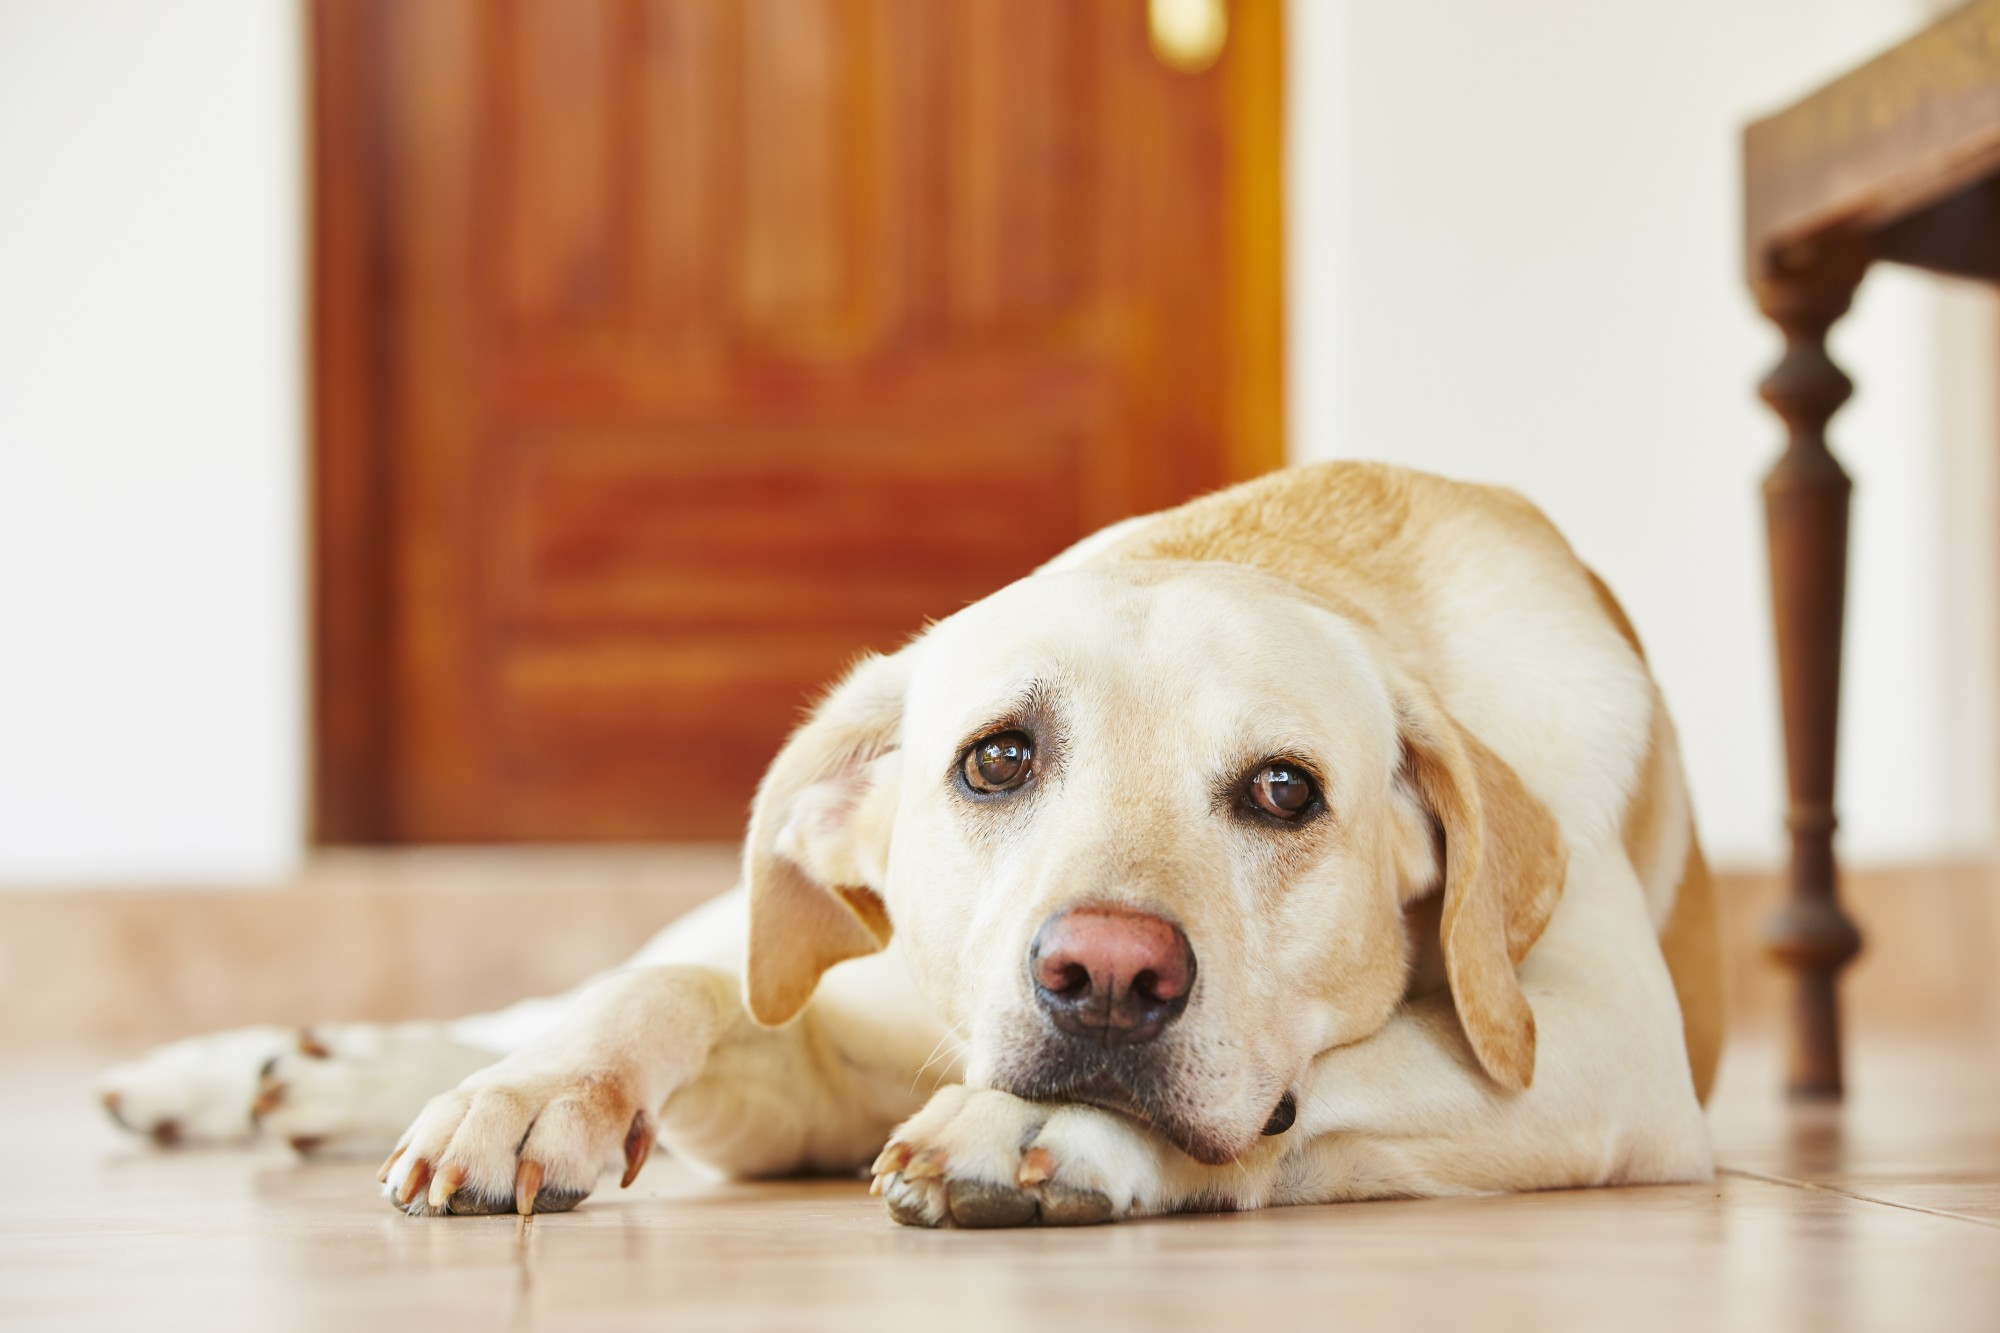 If you get ready to leave your house and notice your dog getting antsy, they might suffer from separation anxiety. Learn the symptoms of dog separation anxiety.